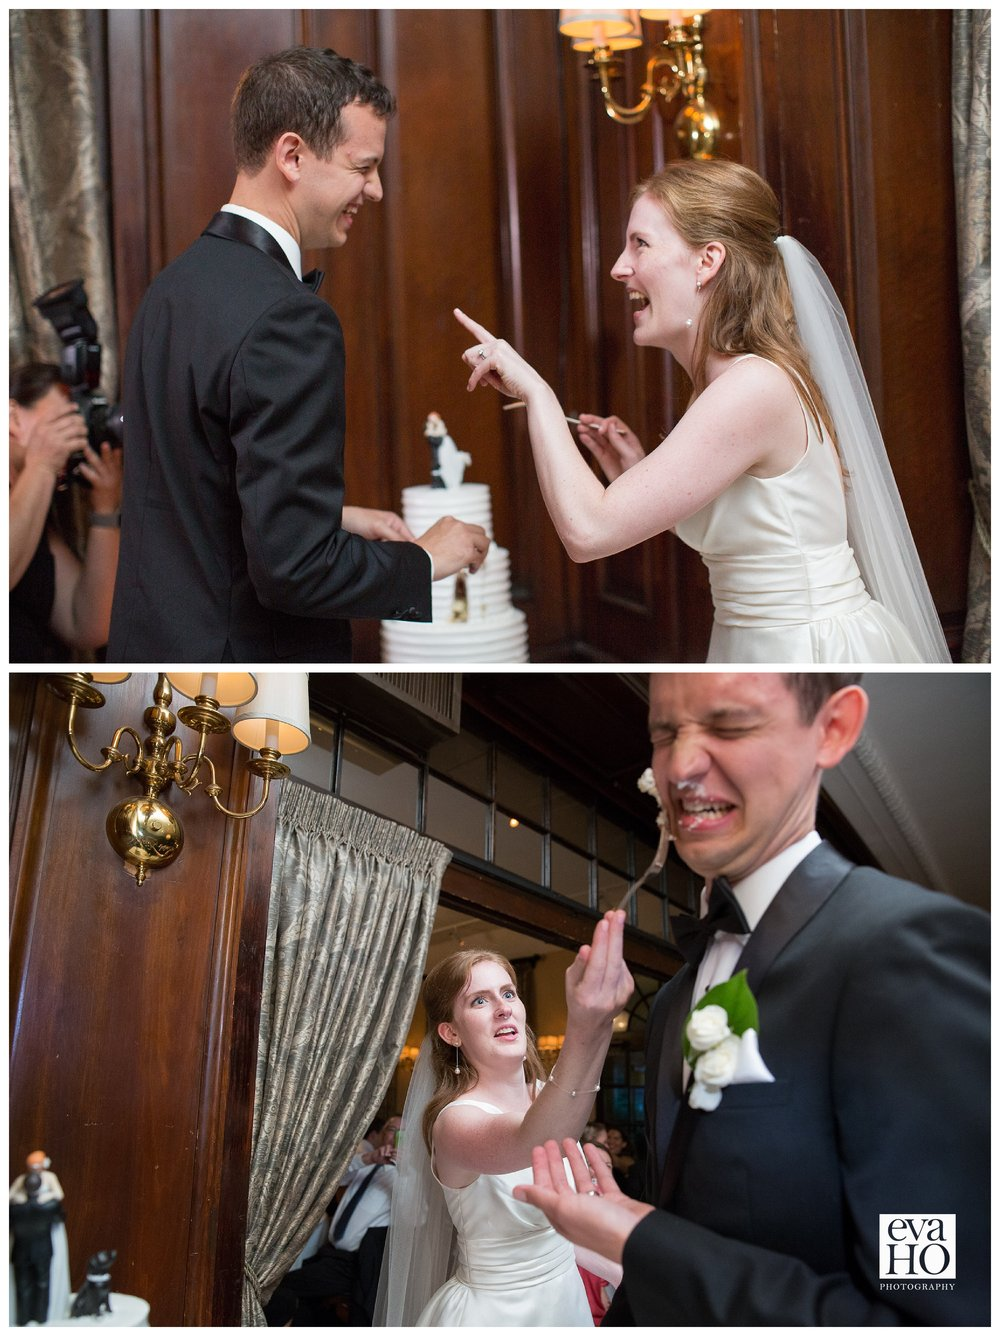 Time to cut the cake...and shove it in the groom's face!